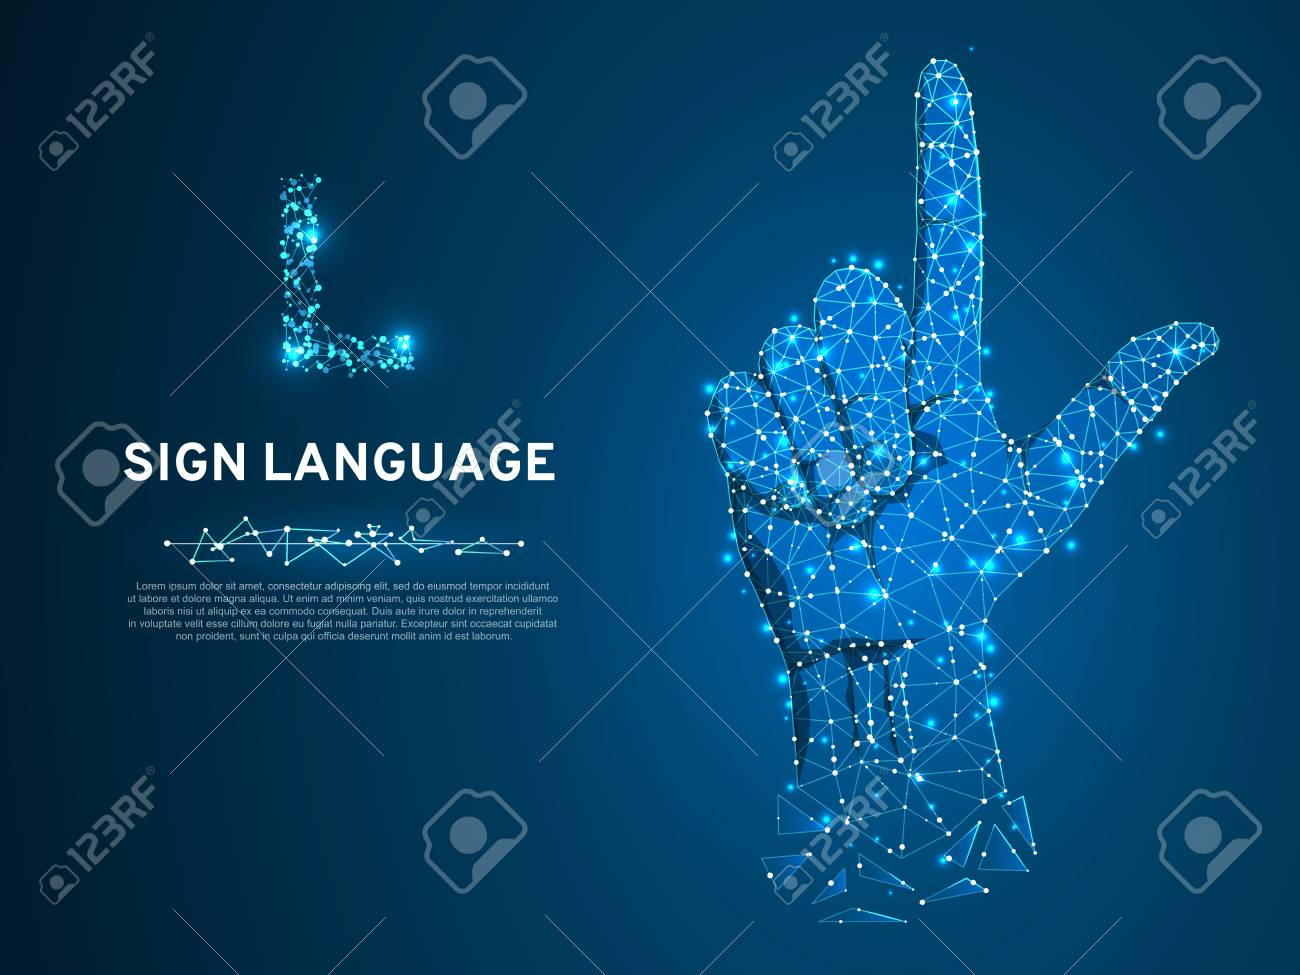 Sign language L letter, hand that use the visual-manual modality to convey meaning. Polygonal space low poly style. People silent communication. Connection wireframe. Vector on dark blue background - 114656624